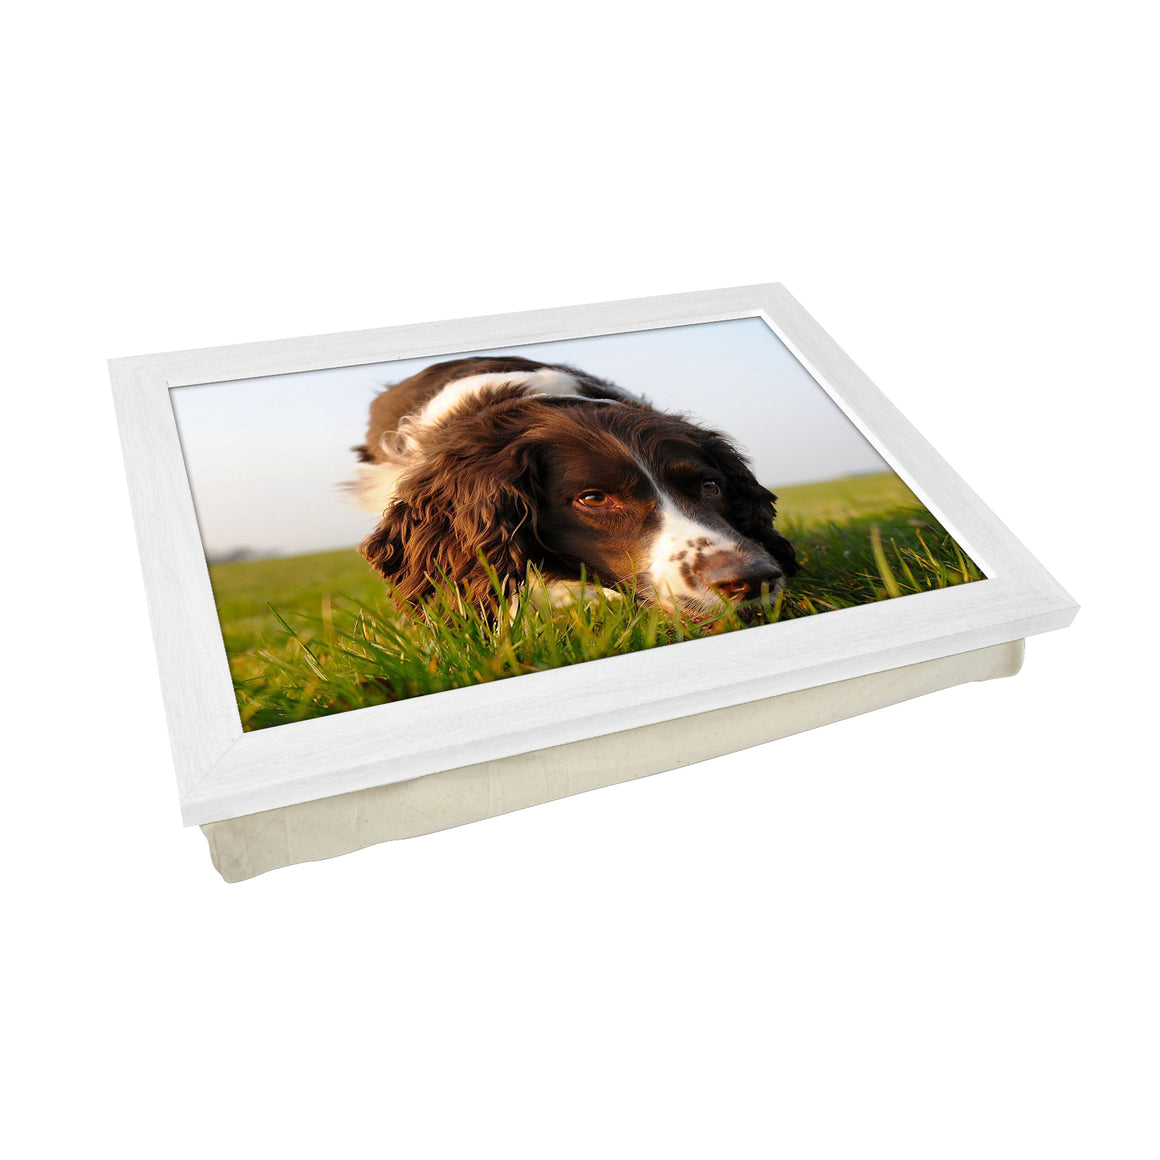 Brown Cocker Spaniel Dog Lap Tray - L0583